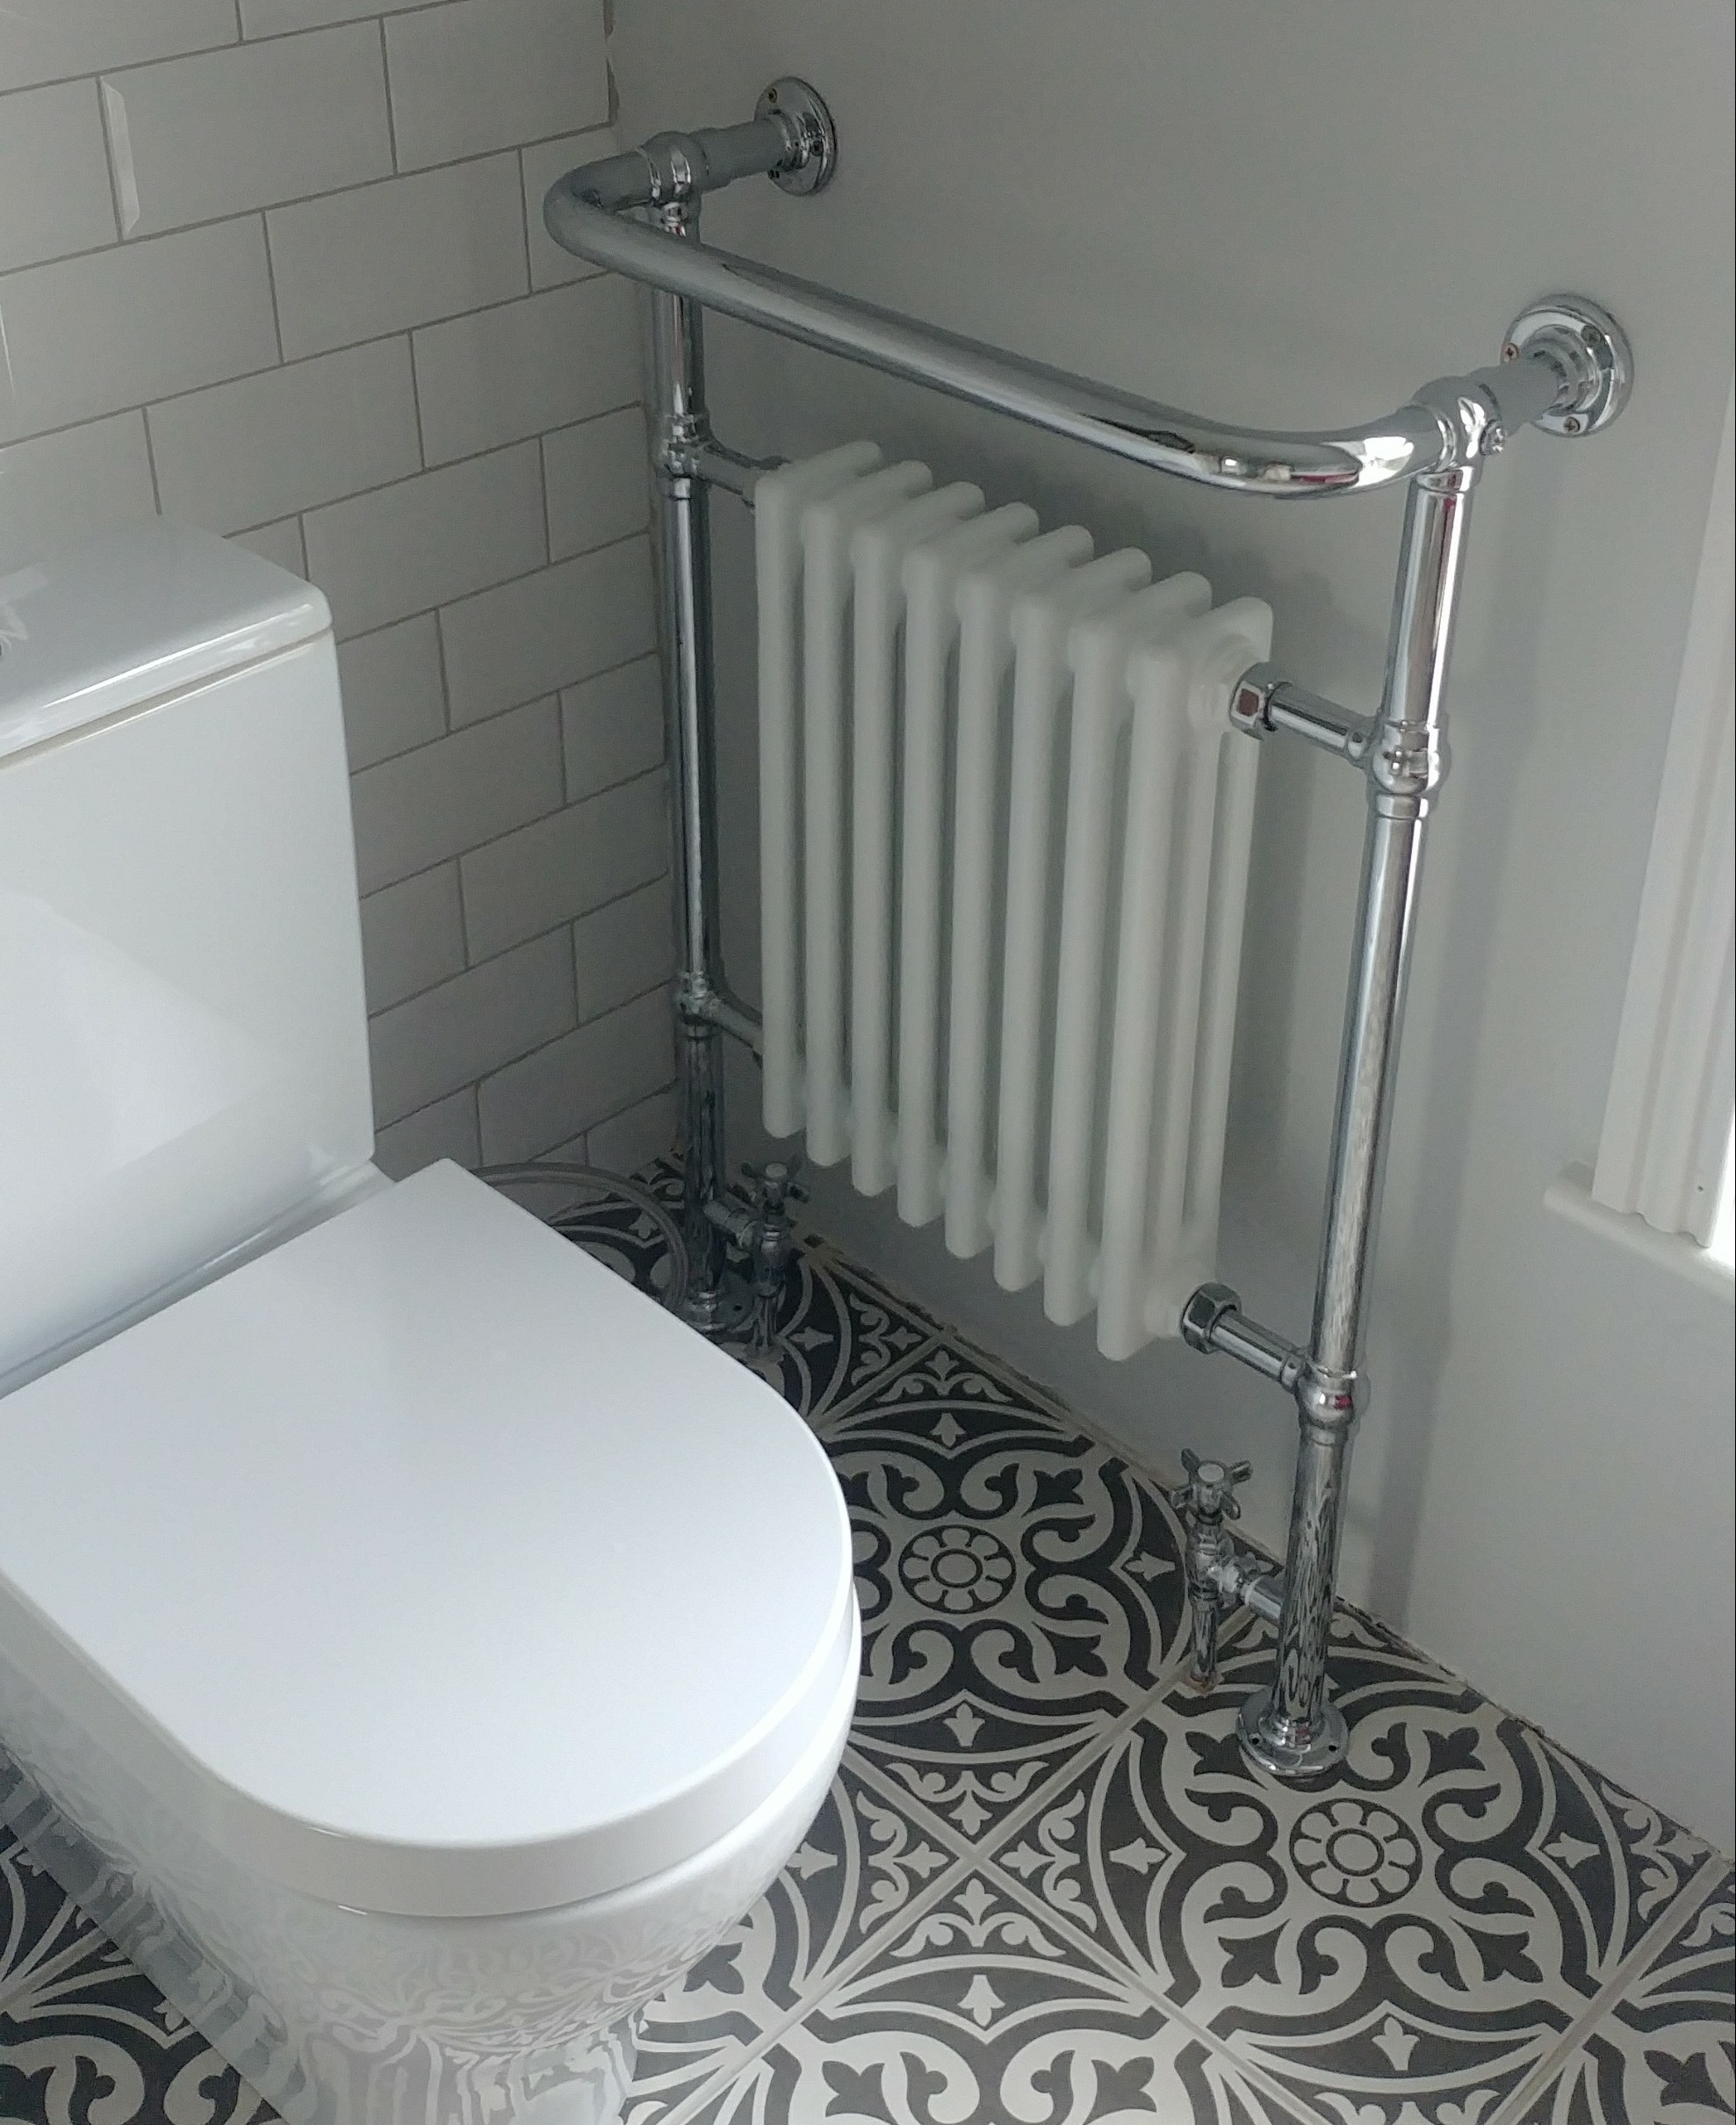 I love the juxtaposition of the modern lines of the WC with the classic curves of the radiator.